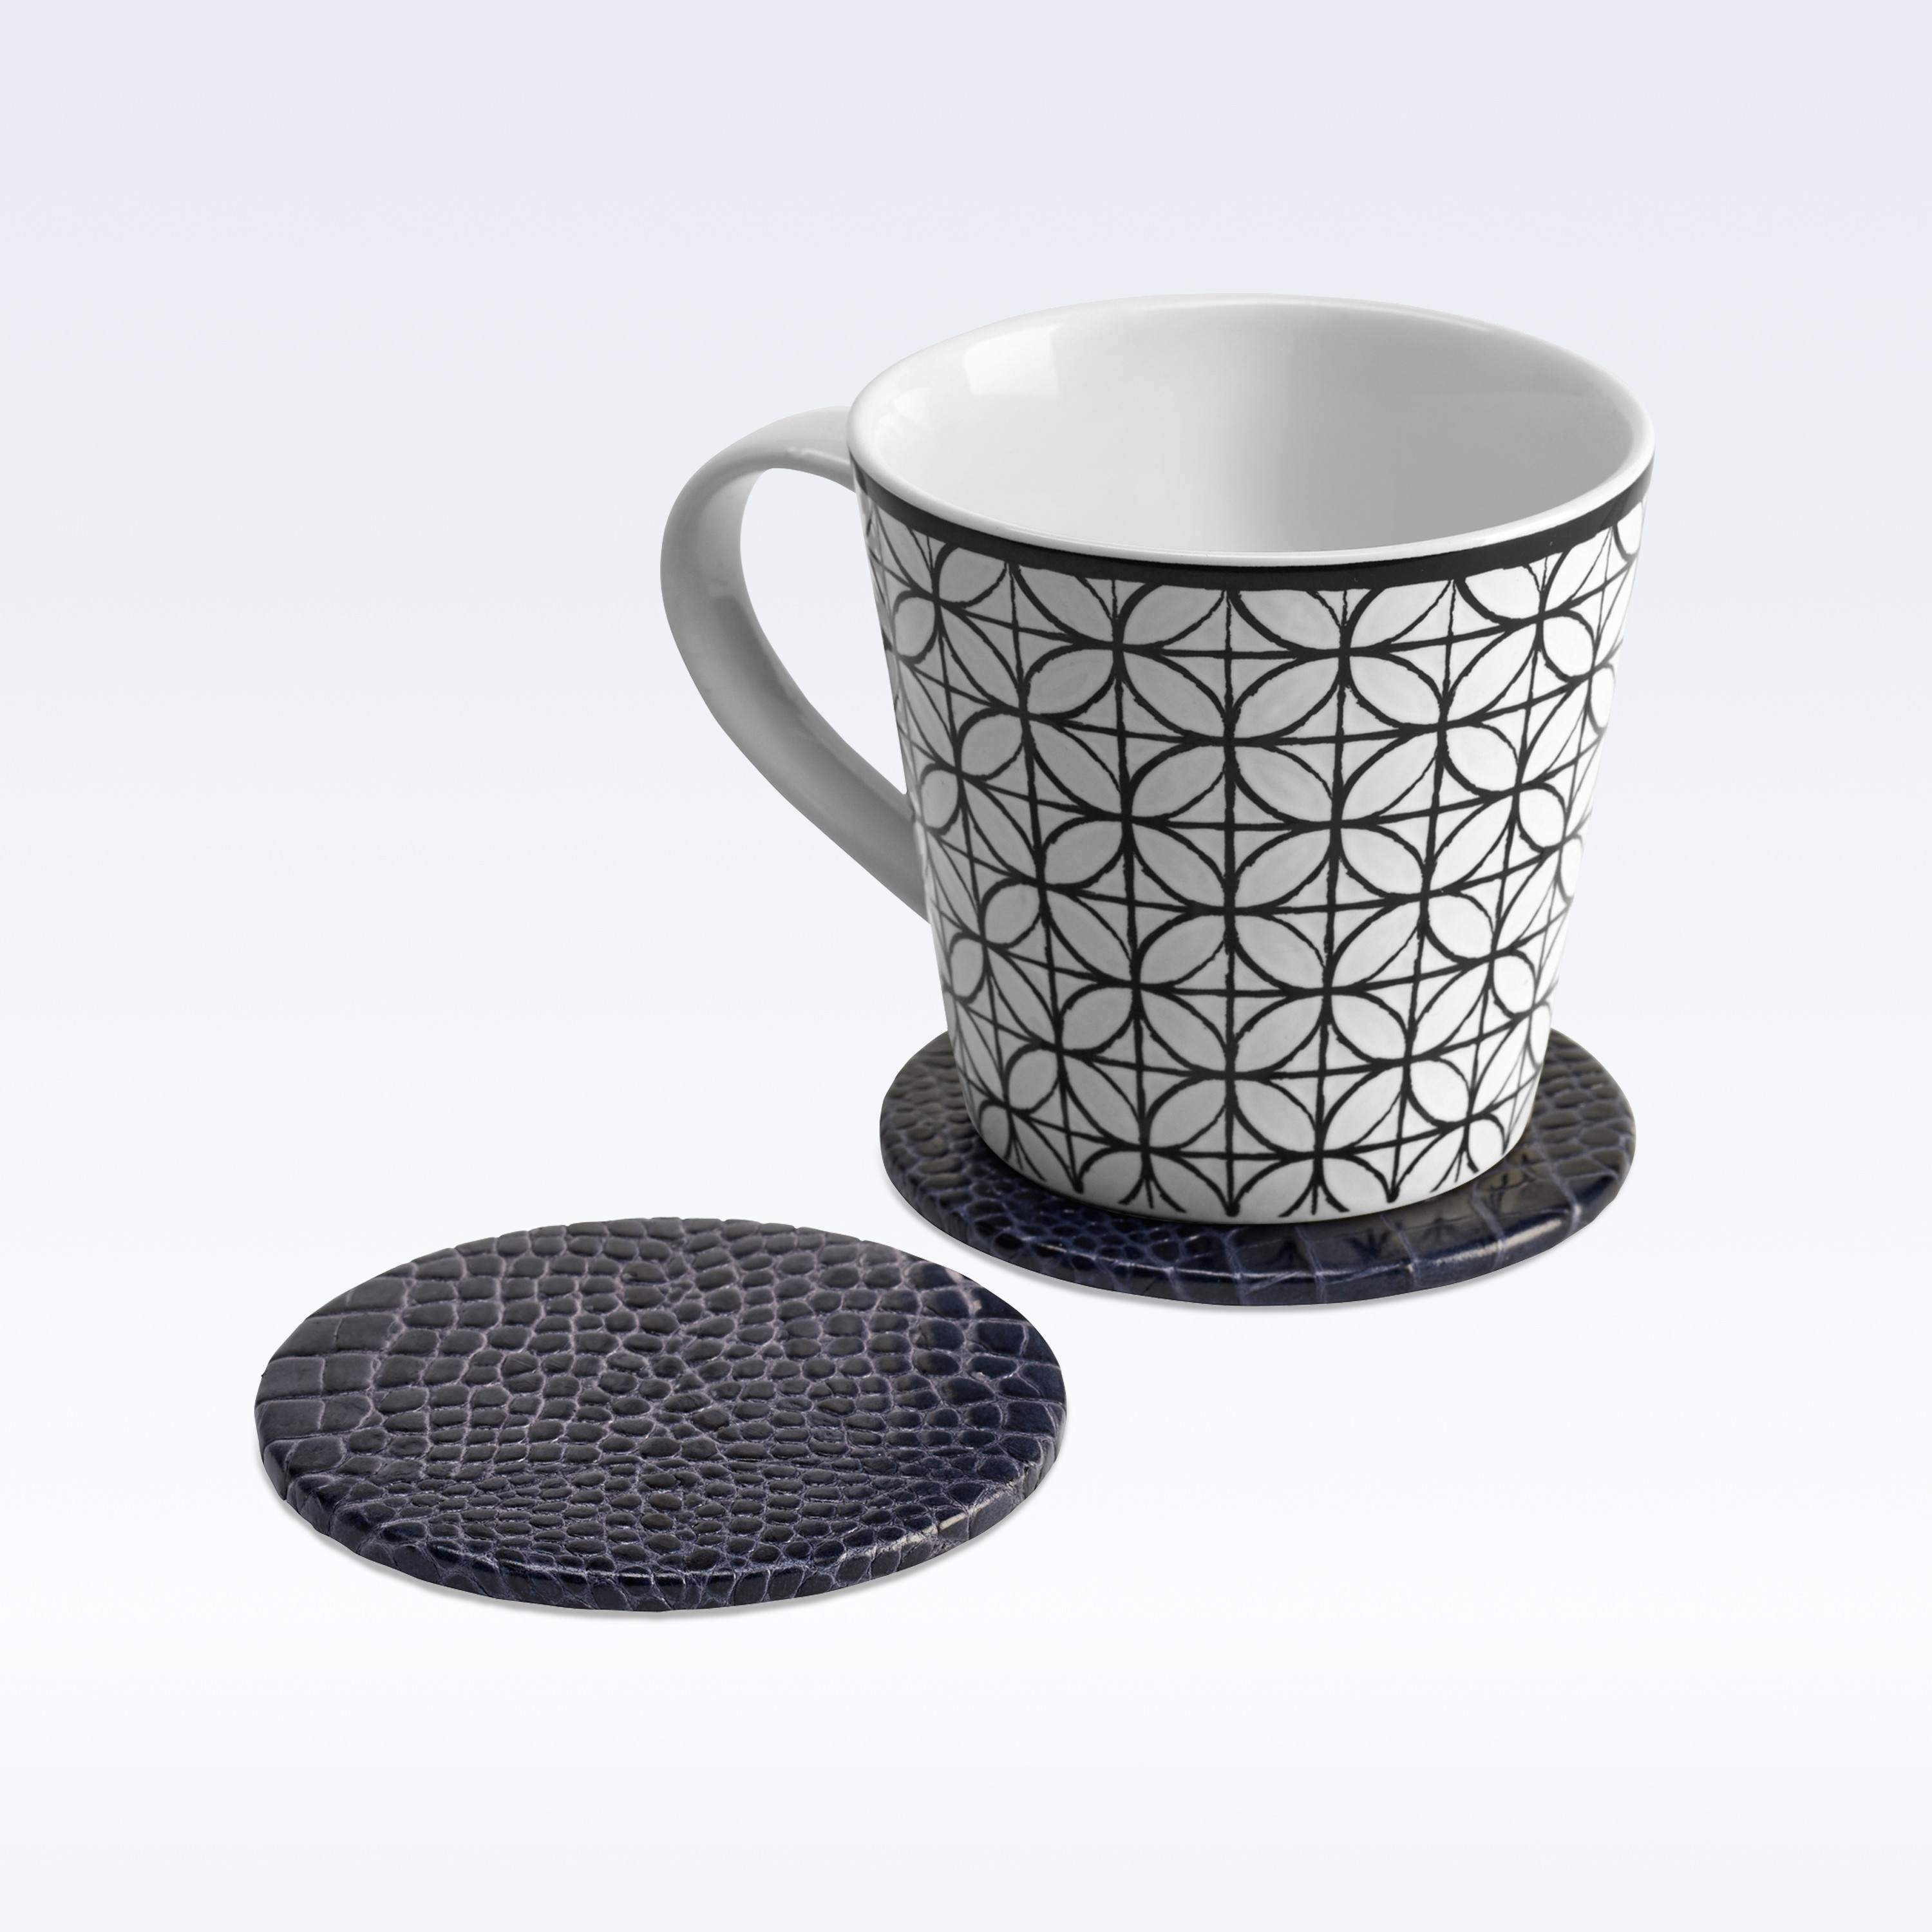 Navy Croc Leather Round Coaster Coasters Home Office